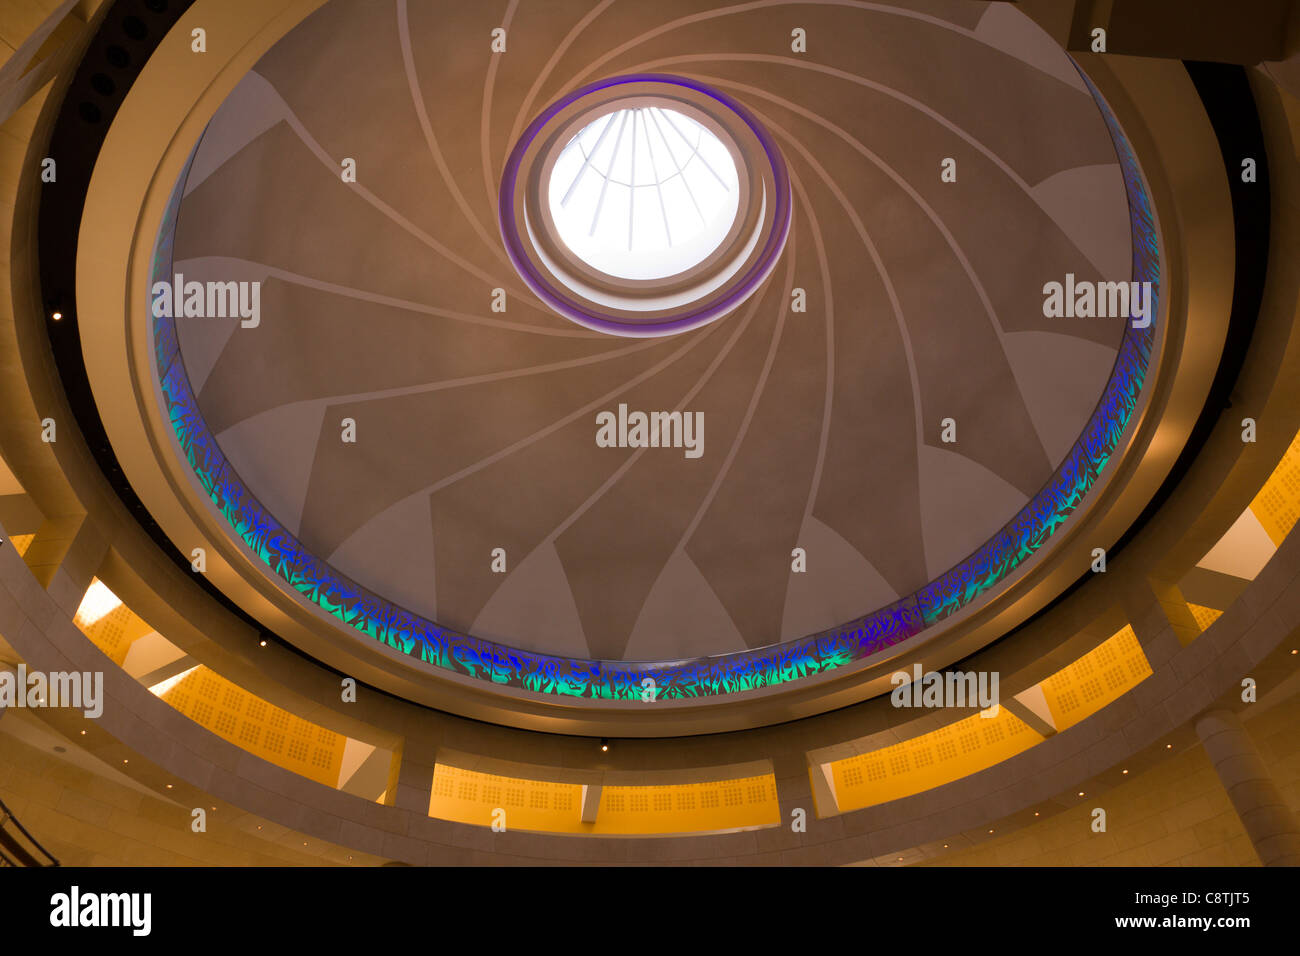 Decorative iris diaphragm pattern and skylight inside domed ceiling at Bluewater shopping centre, Greenhithe, Kent, - Stock Image